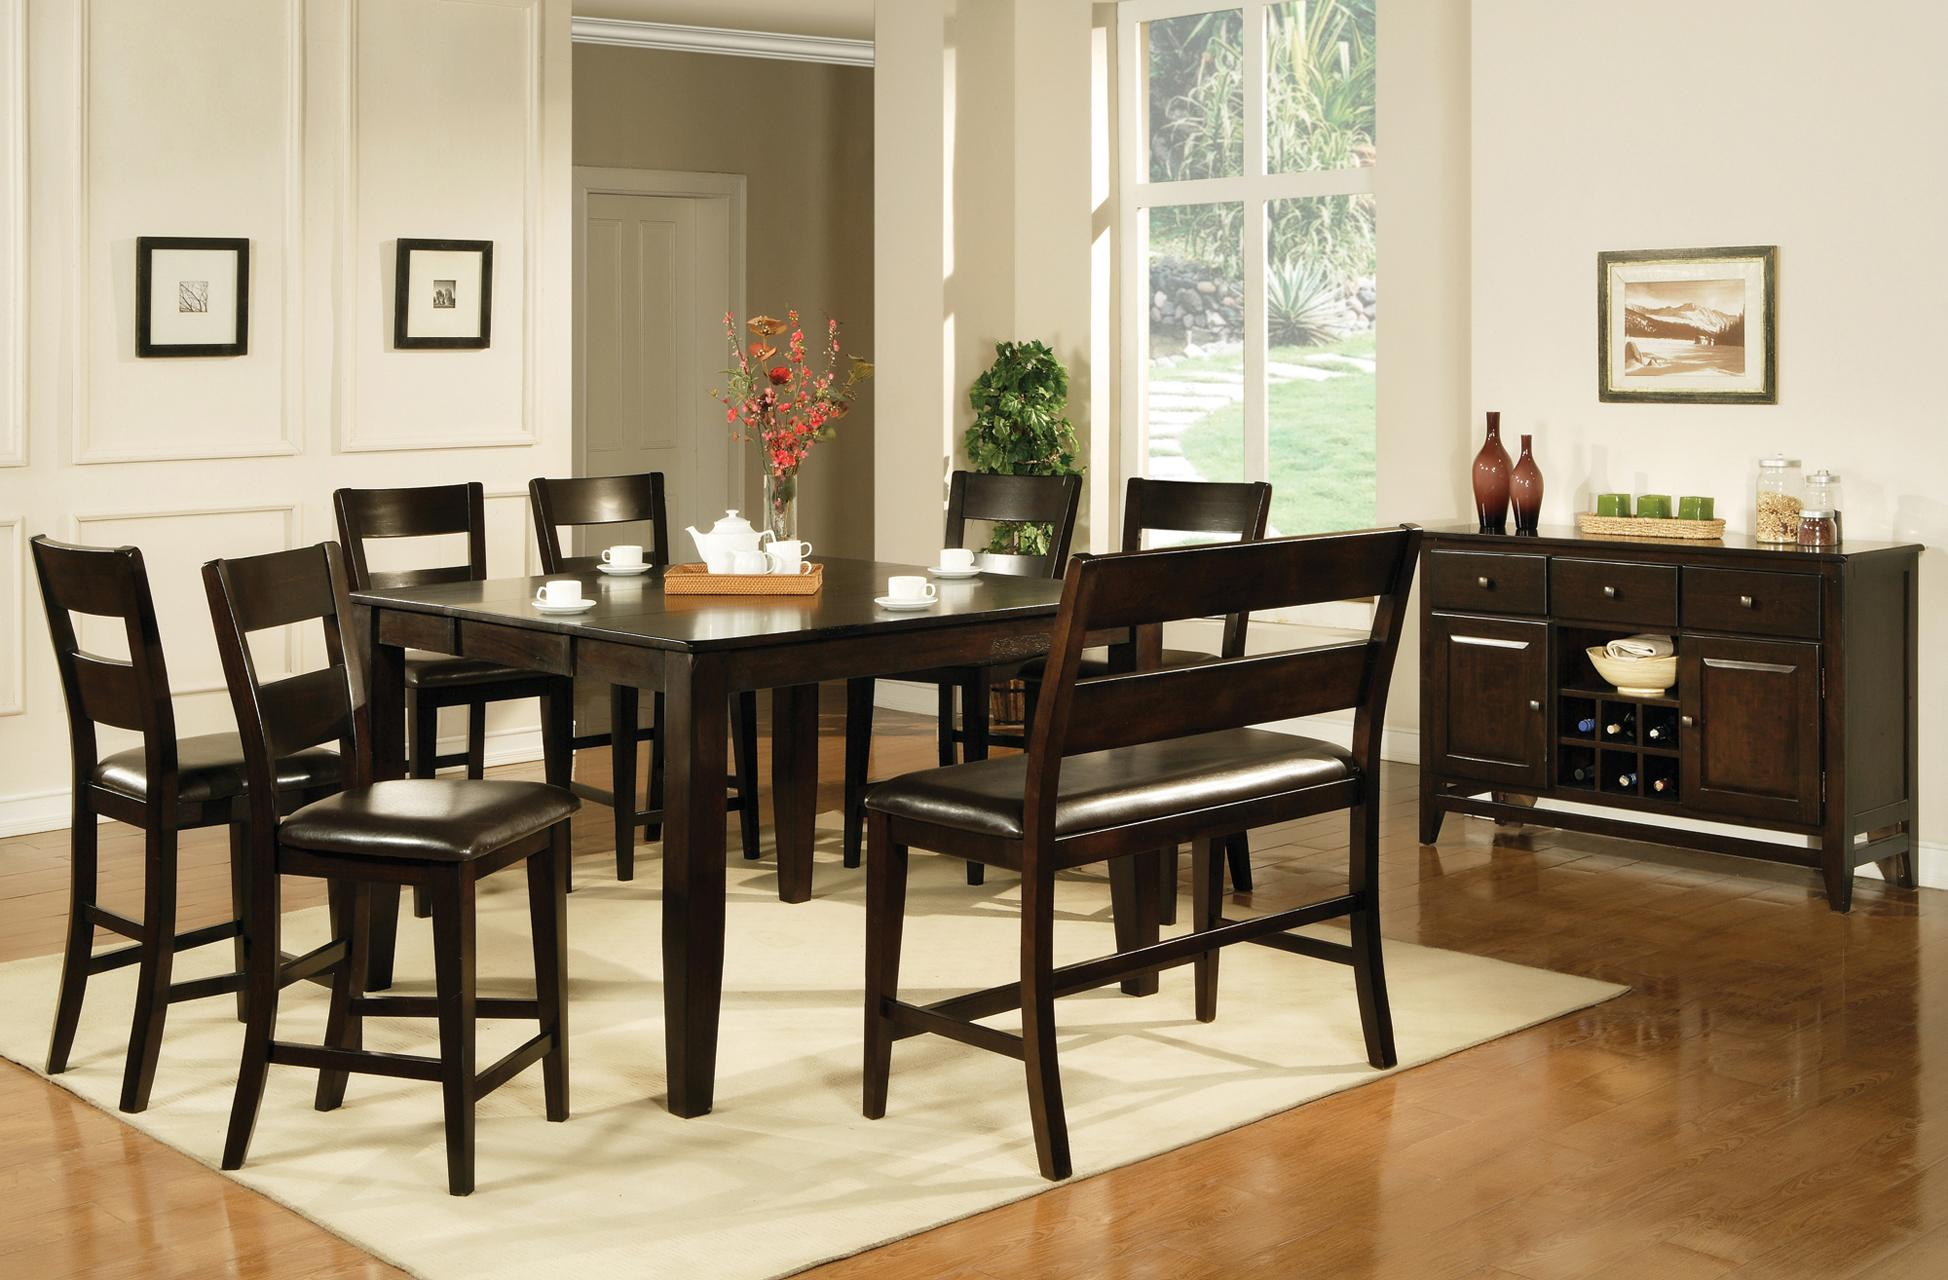 Steve silver victoria casual dining room group olinde 39 s for Casual dining room furniture